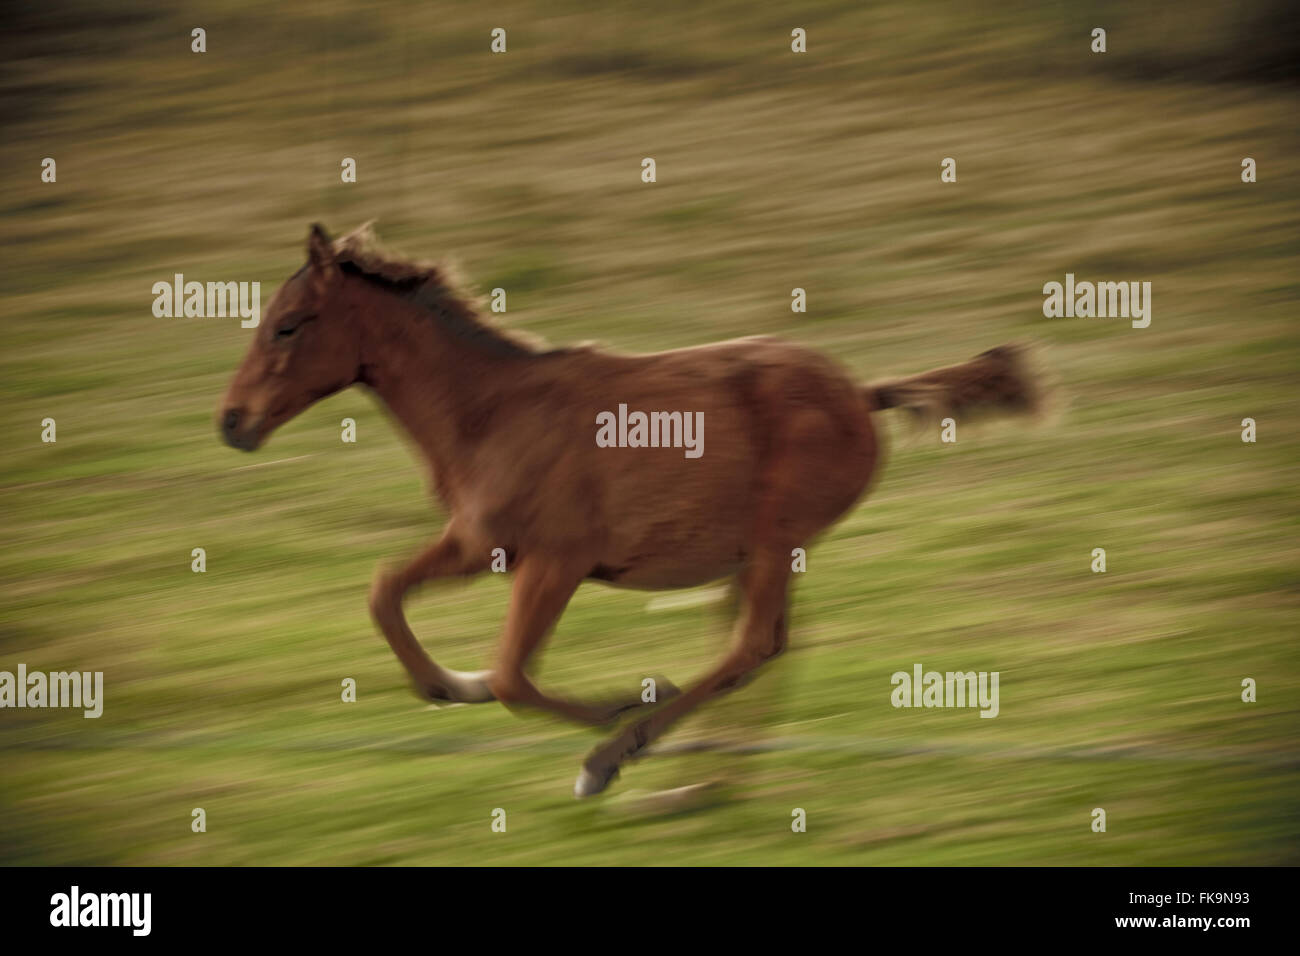 PSI Horse - Thoroughbred created an estancia in the countryside of Rivera in Uruguay Stock Photo